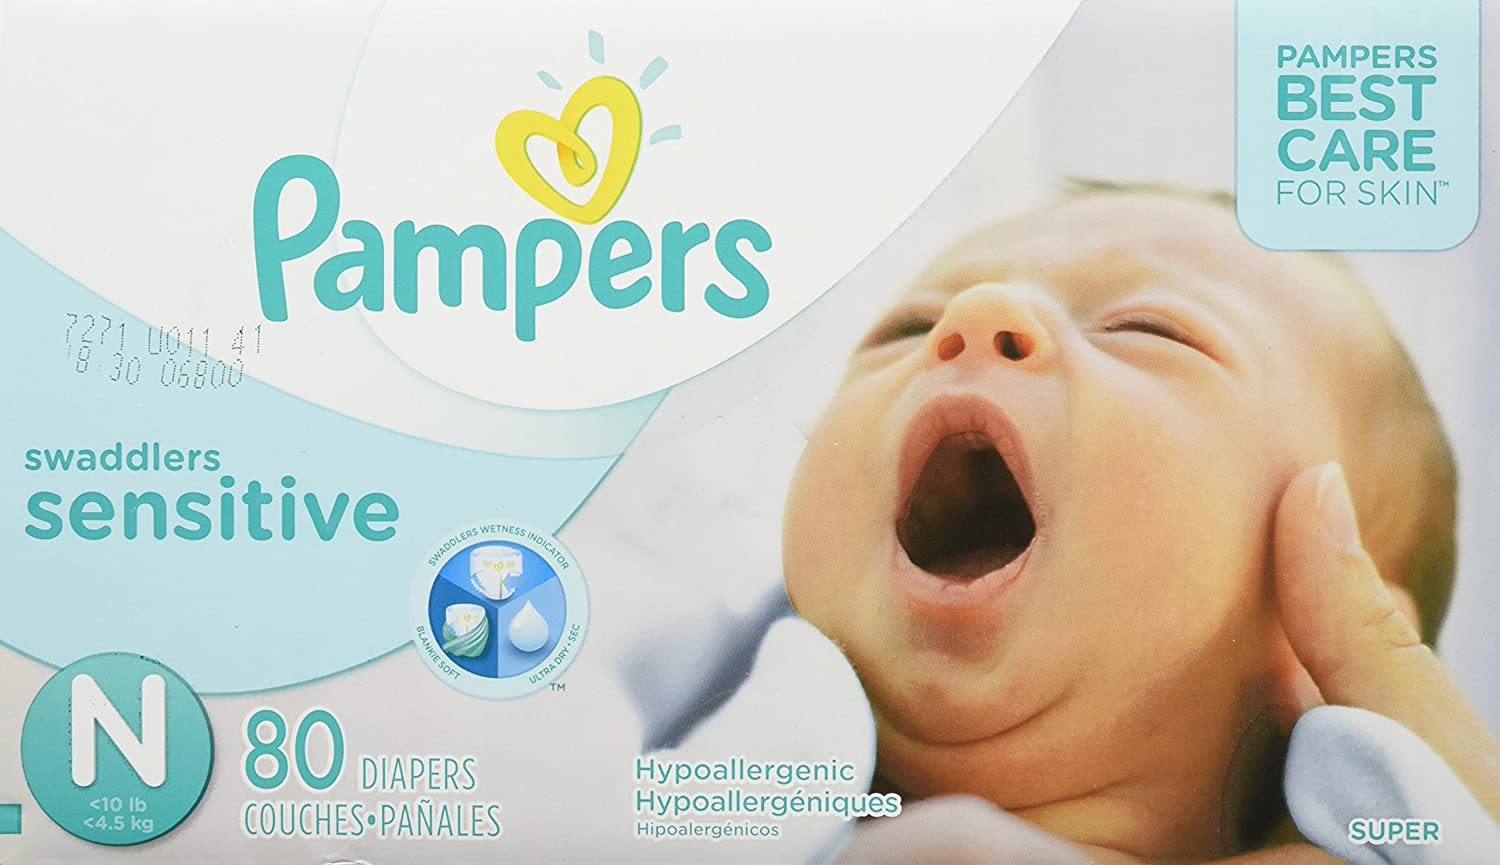 Pampers Swaddlers Sensitive Disposable Diapers Newborn Size 0 (> 10 Lb), 80 Count, Super by Pampers